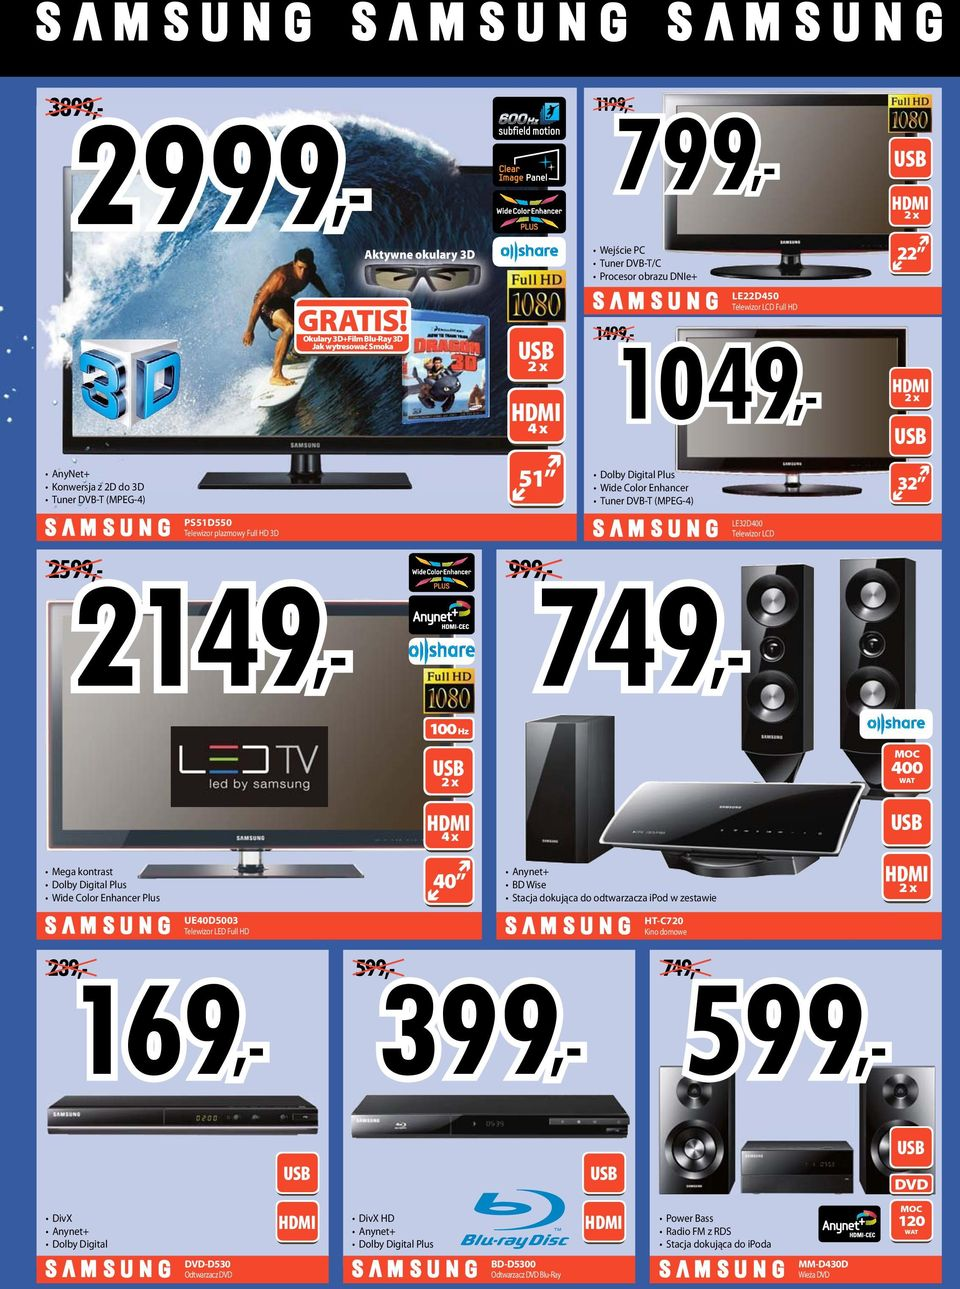 DVB-T (MPEG-4) 32 2599 999 749 LE32D400 Telewizor LCD 100 Hz 2 x 400 WT 4 x Mega kontrast Dolby Digital Plus Wide Color Enhancer Plus 40 nynet+ BD Wise Stacja dokująca do odtwarzacza ipod w zestawie